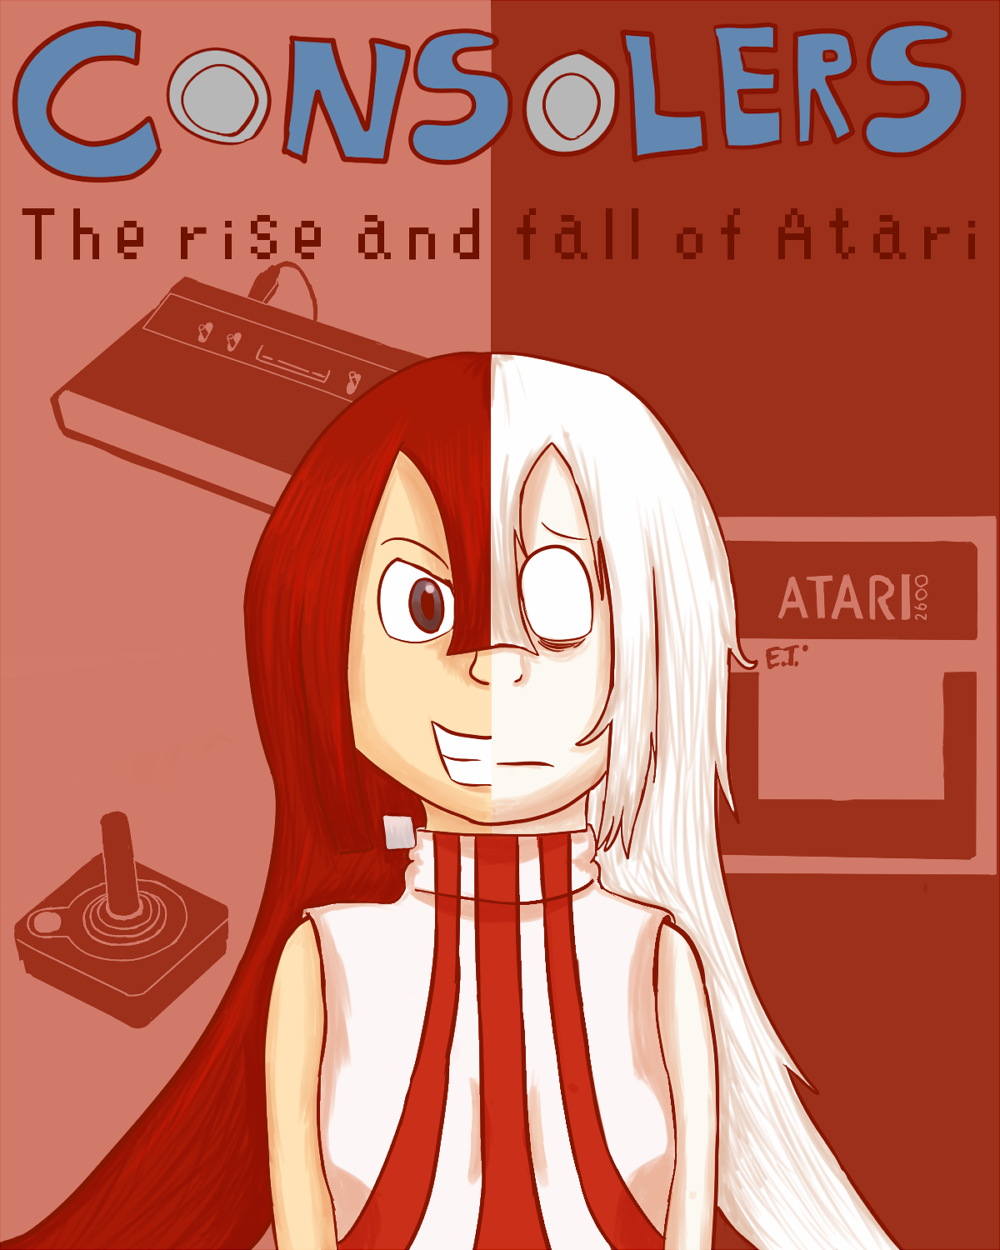 Rise and Fall of Atari - Cover